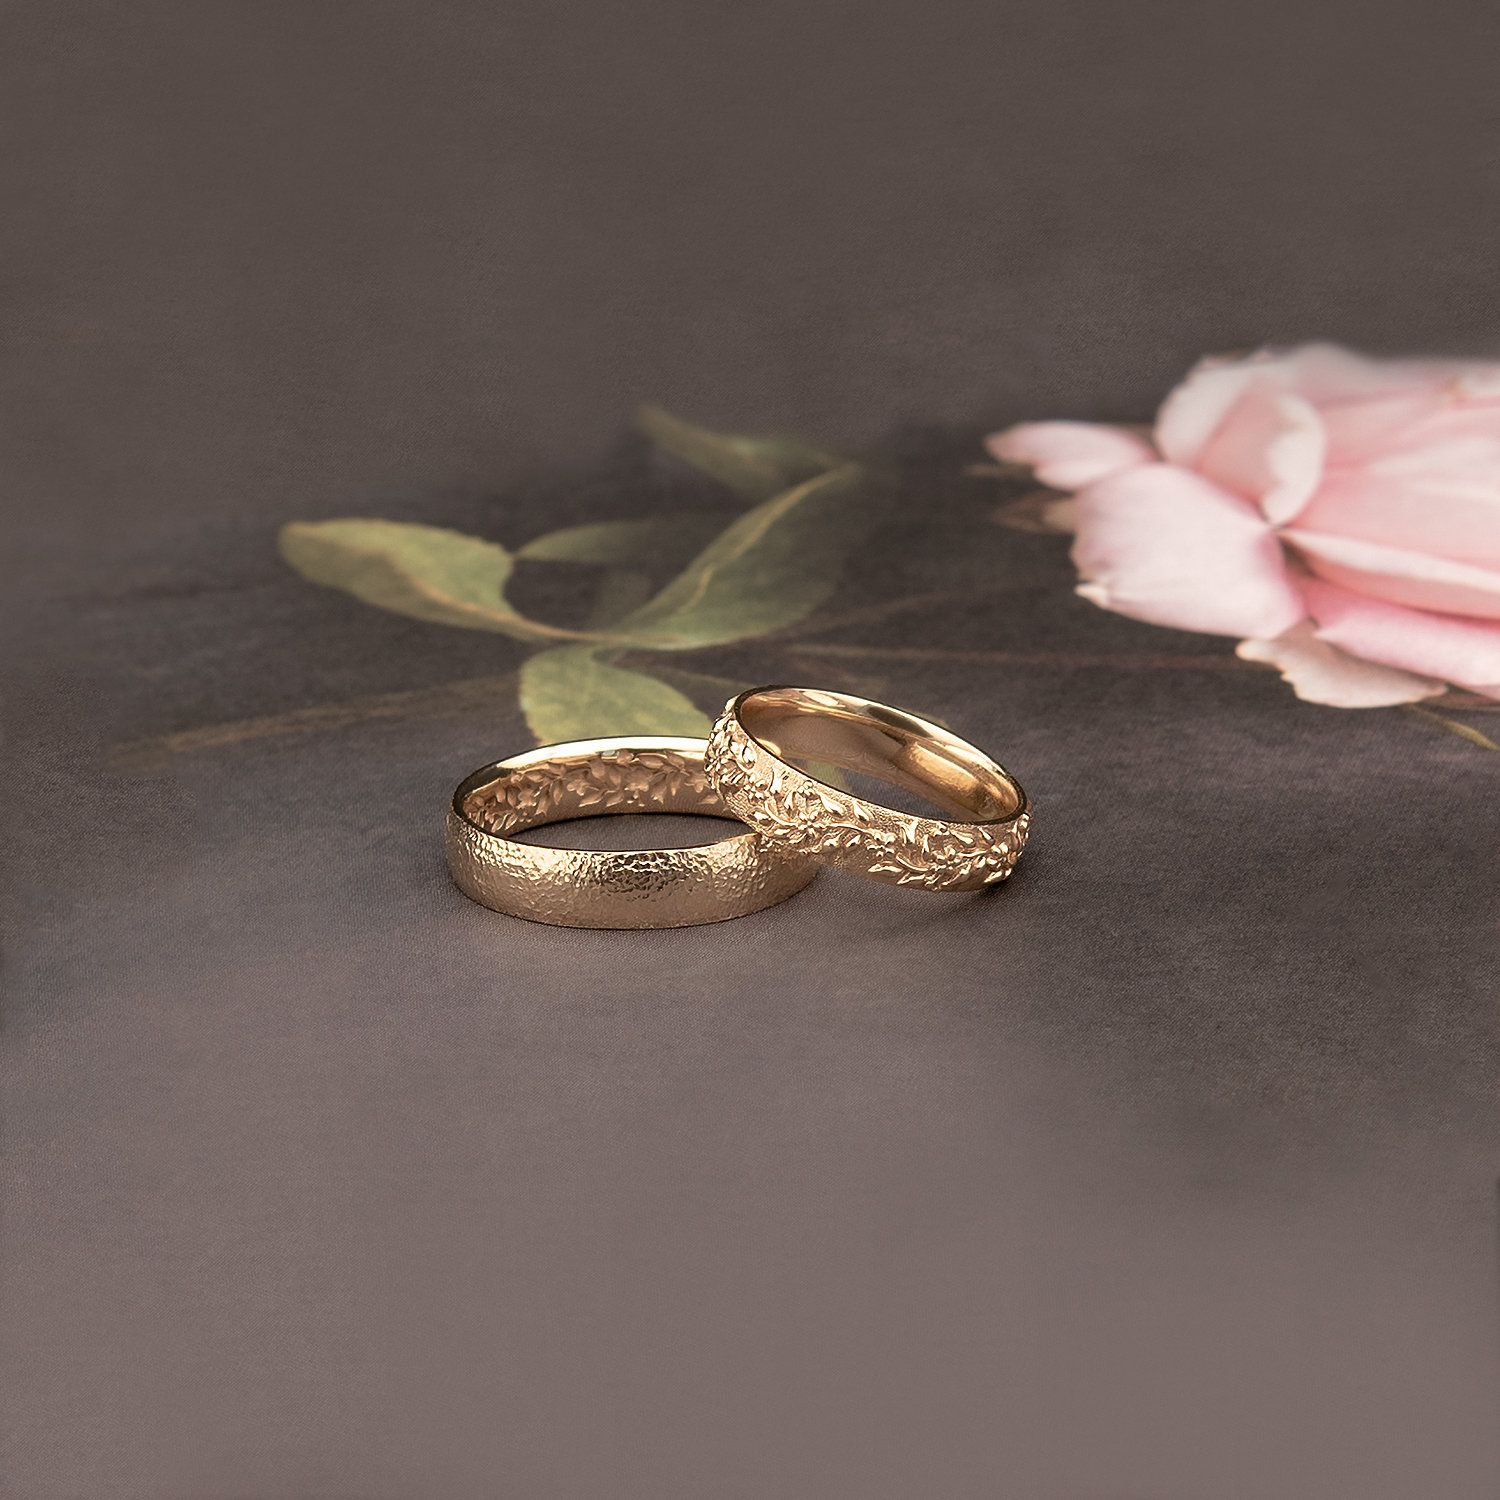 Sirmione And Desenzano Boho Wedding Rings With Amazing Floral Pattern Carved On Rings Gold Wedding Bands Inspired By Nature Gold Band Wedding Ring Boho Wedding Ring Interesting Wedding Rings